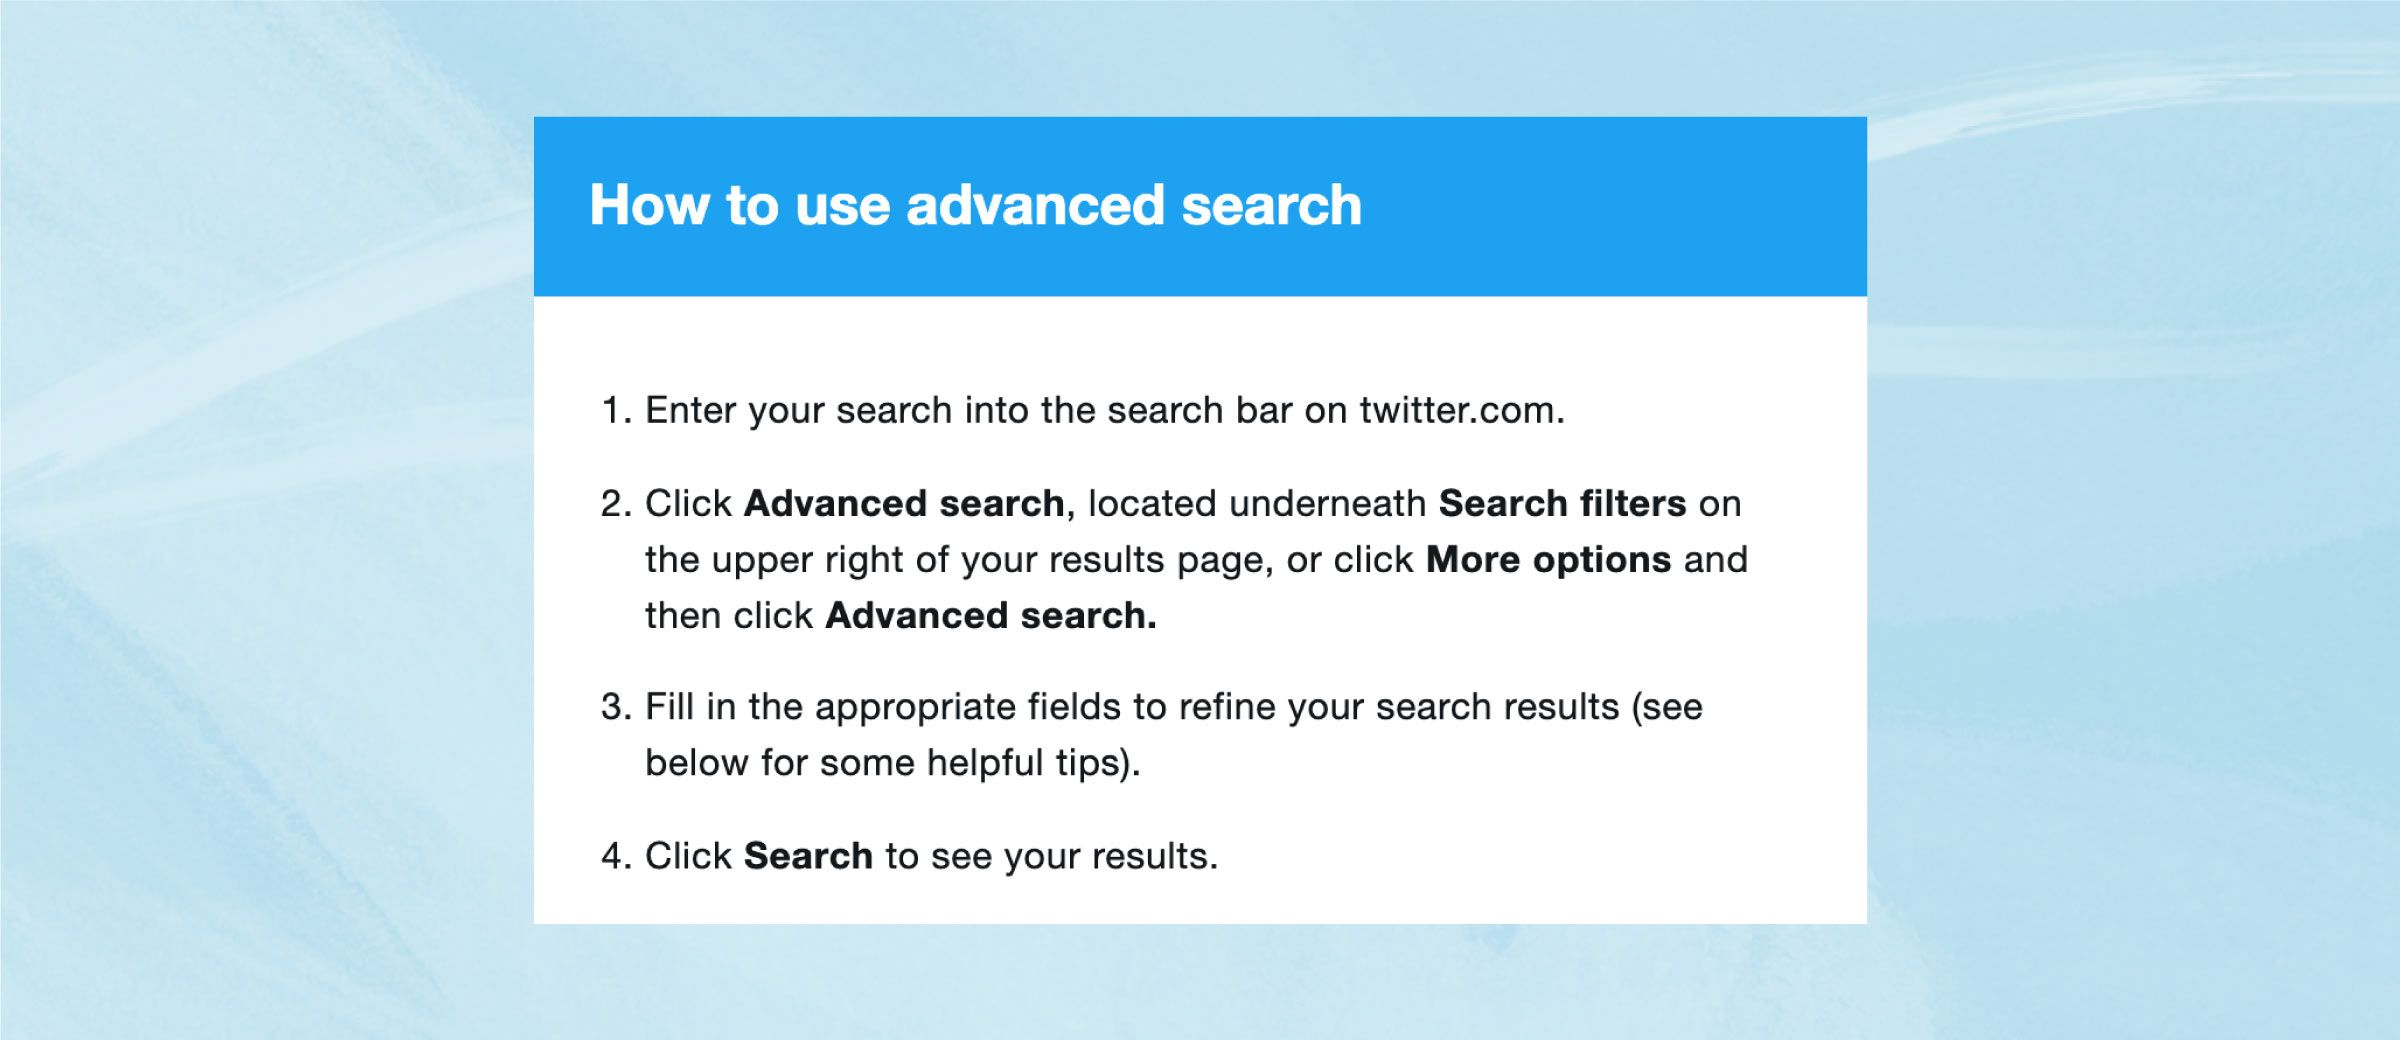 PLANOLY---Blog---Twitter-Advanced-Search---Blog-Assets---How-to-Use